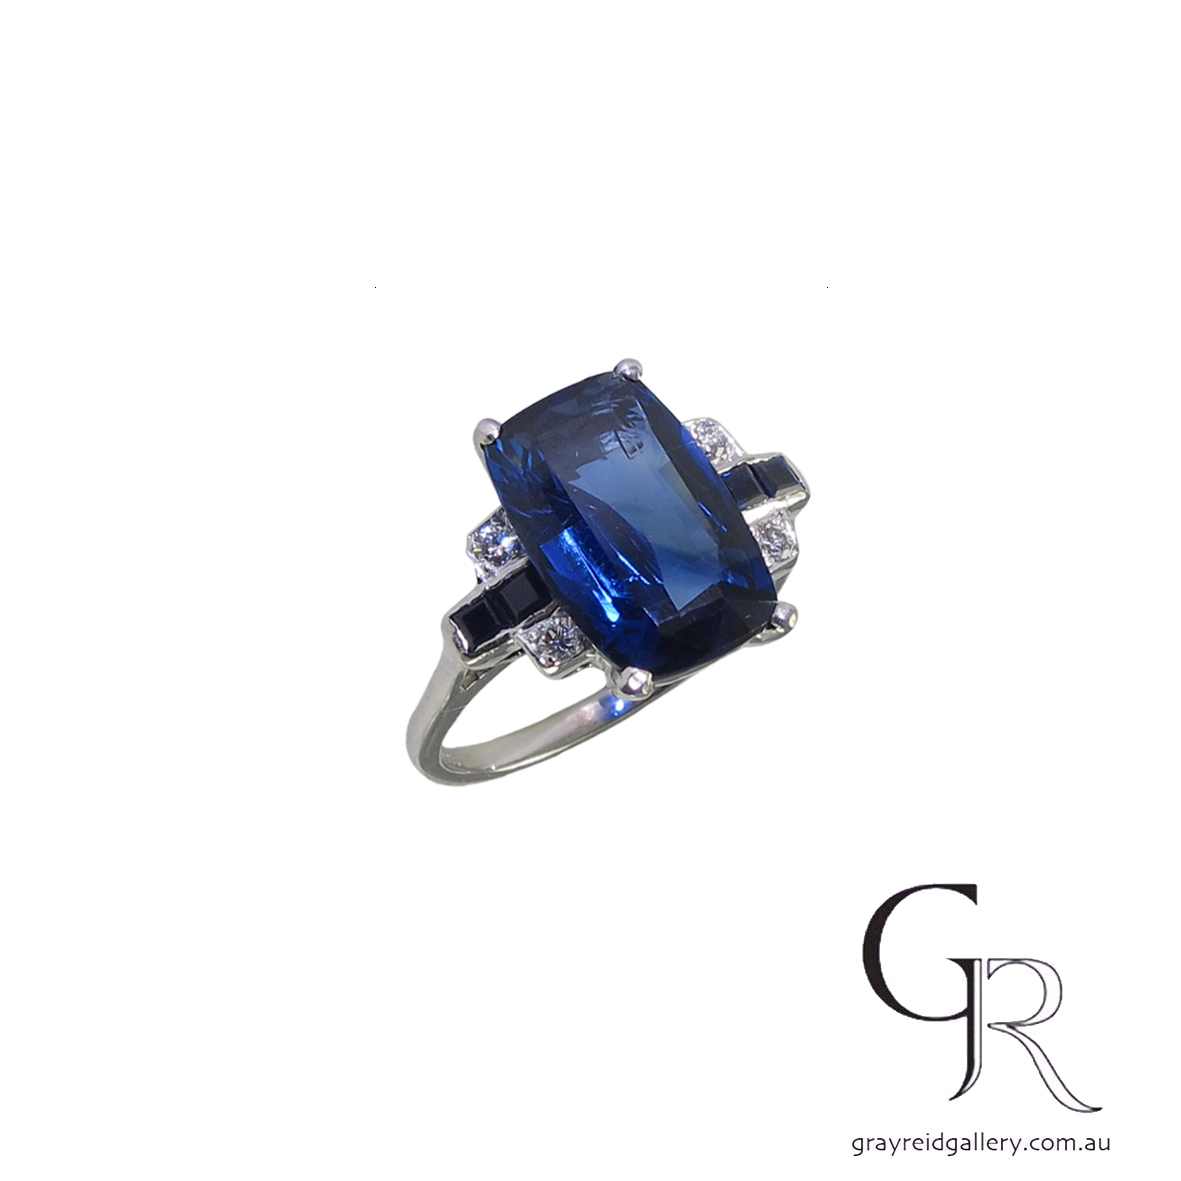 original art deco large sapphire and diamond ring 419209 B.jpg